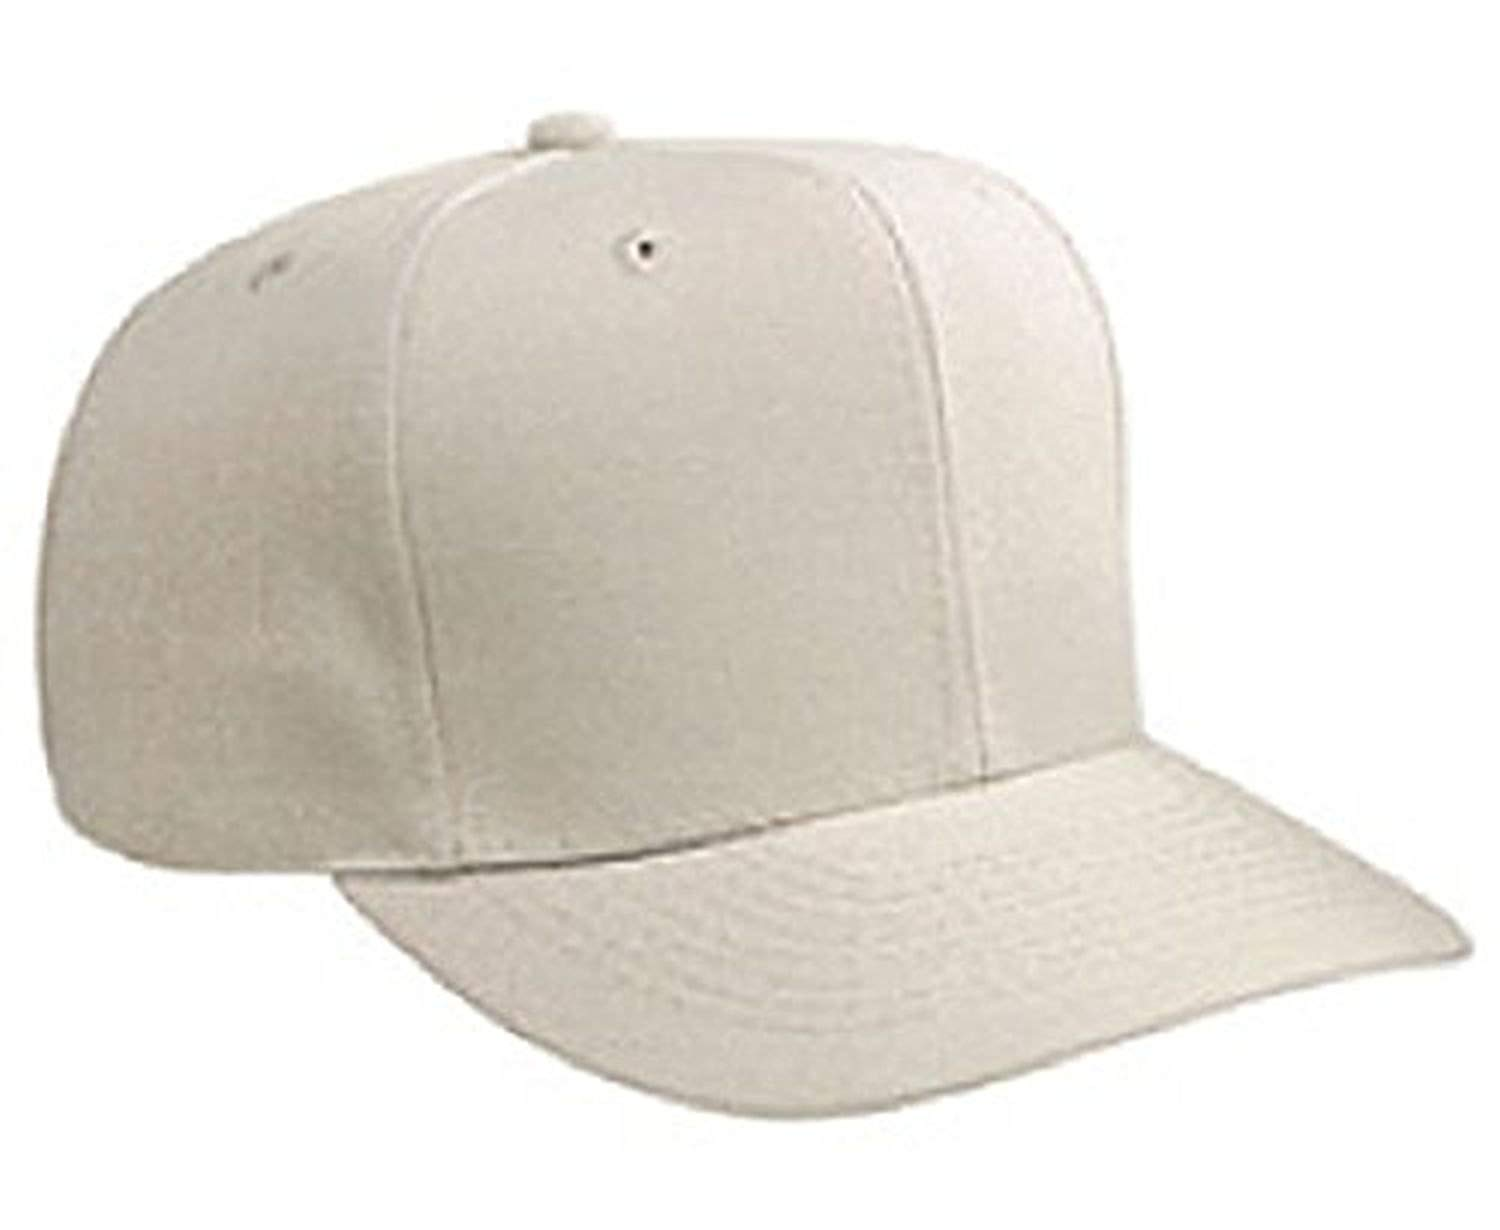 Hats & Caps Shop Wool Blend Pro Style Caps - By TheTargetBuys